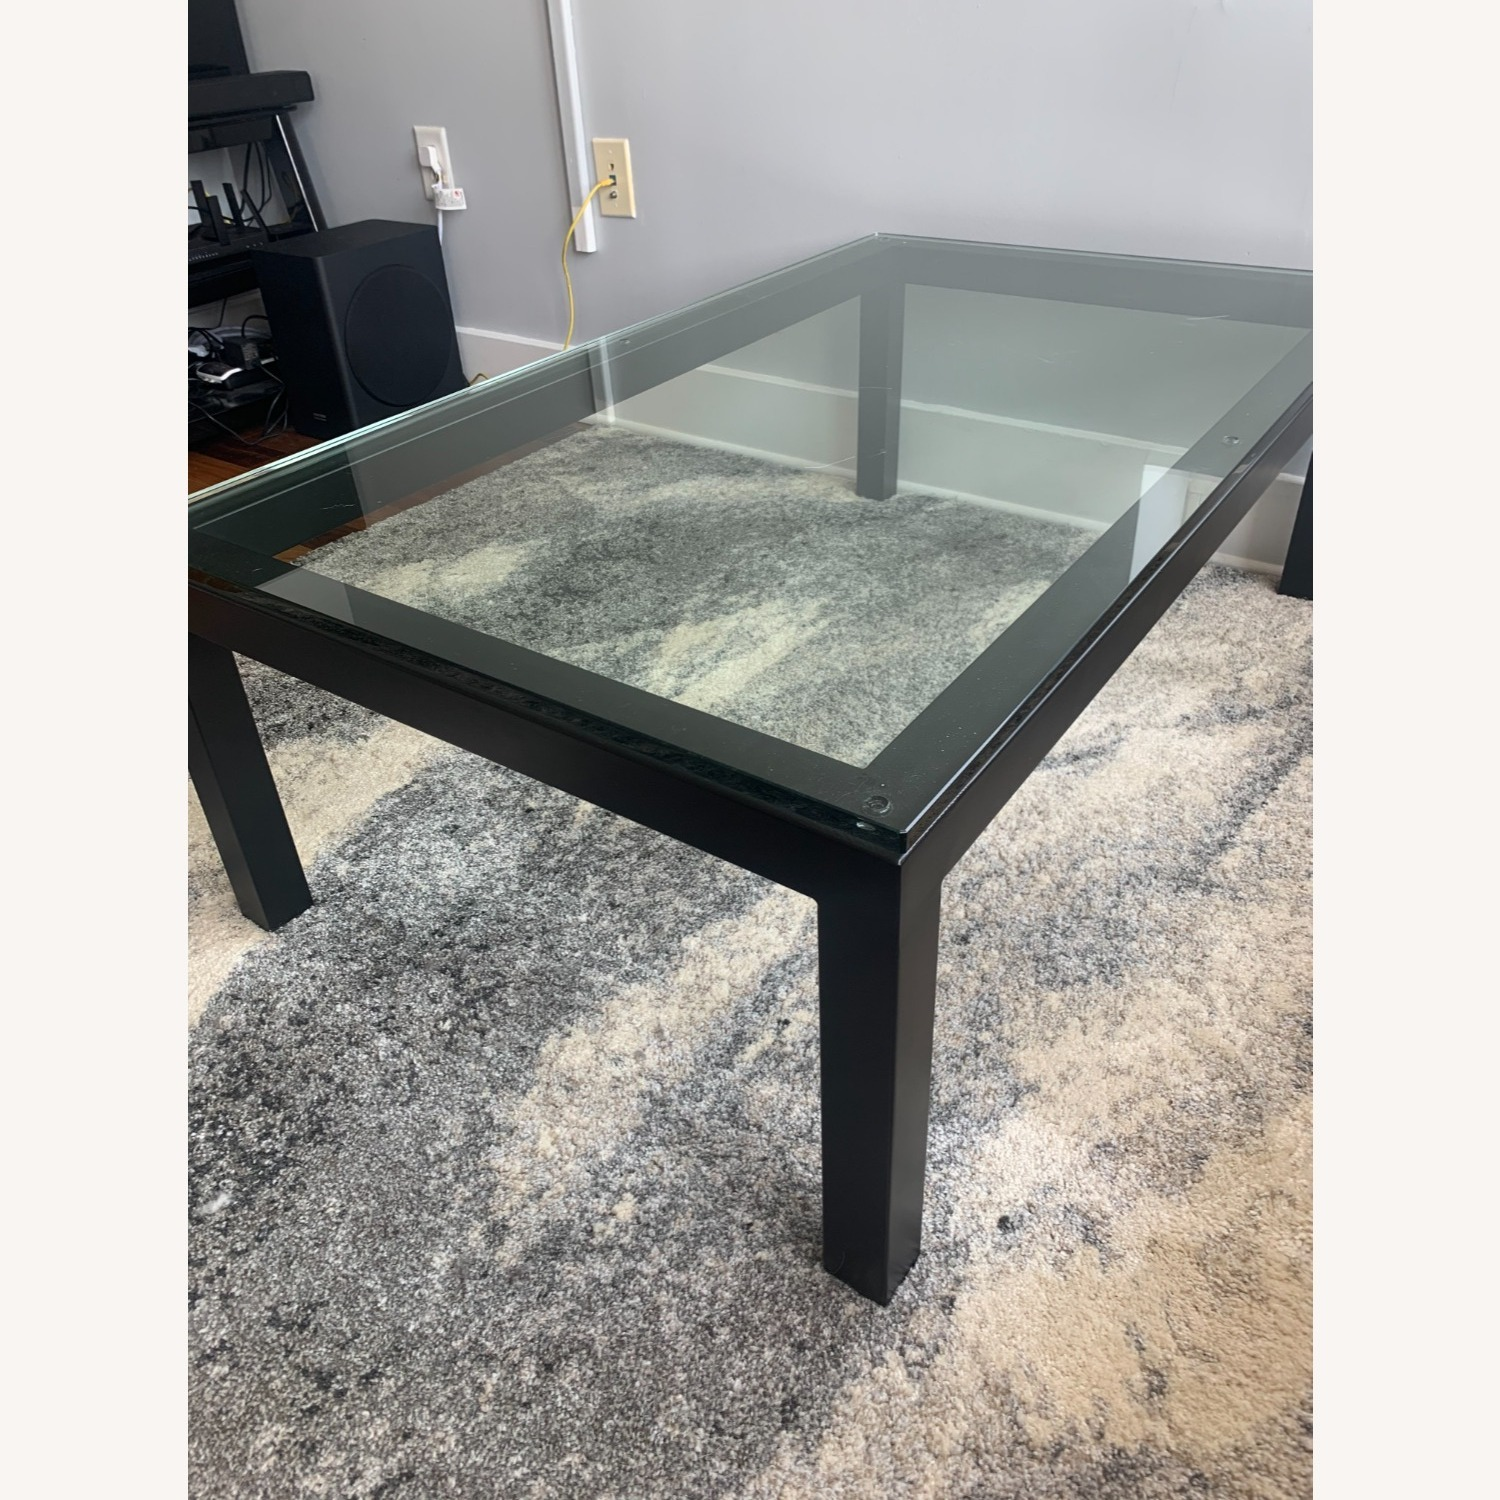 Crate and Barrel Glass Rectangular Coffee Table - image-7